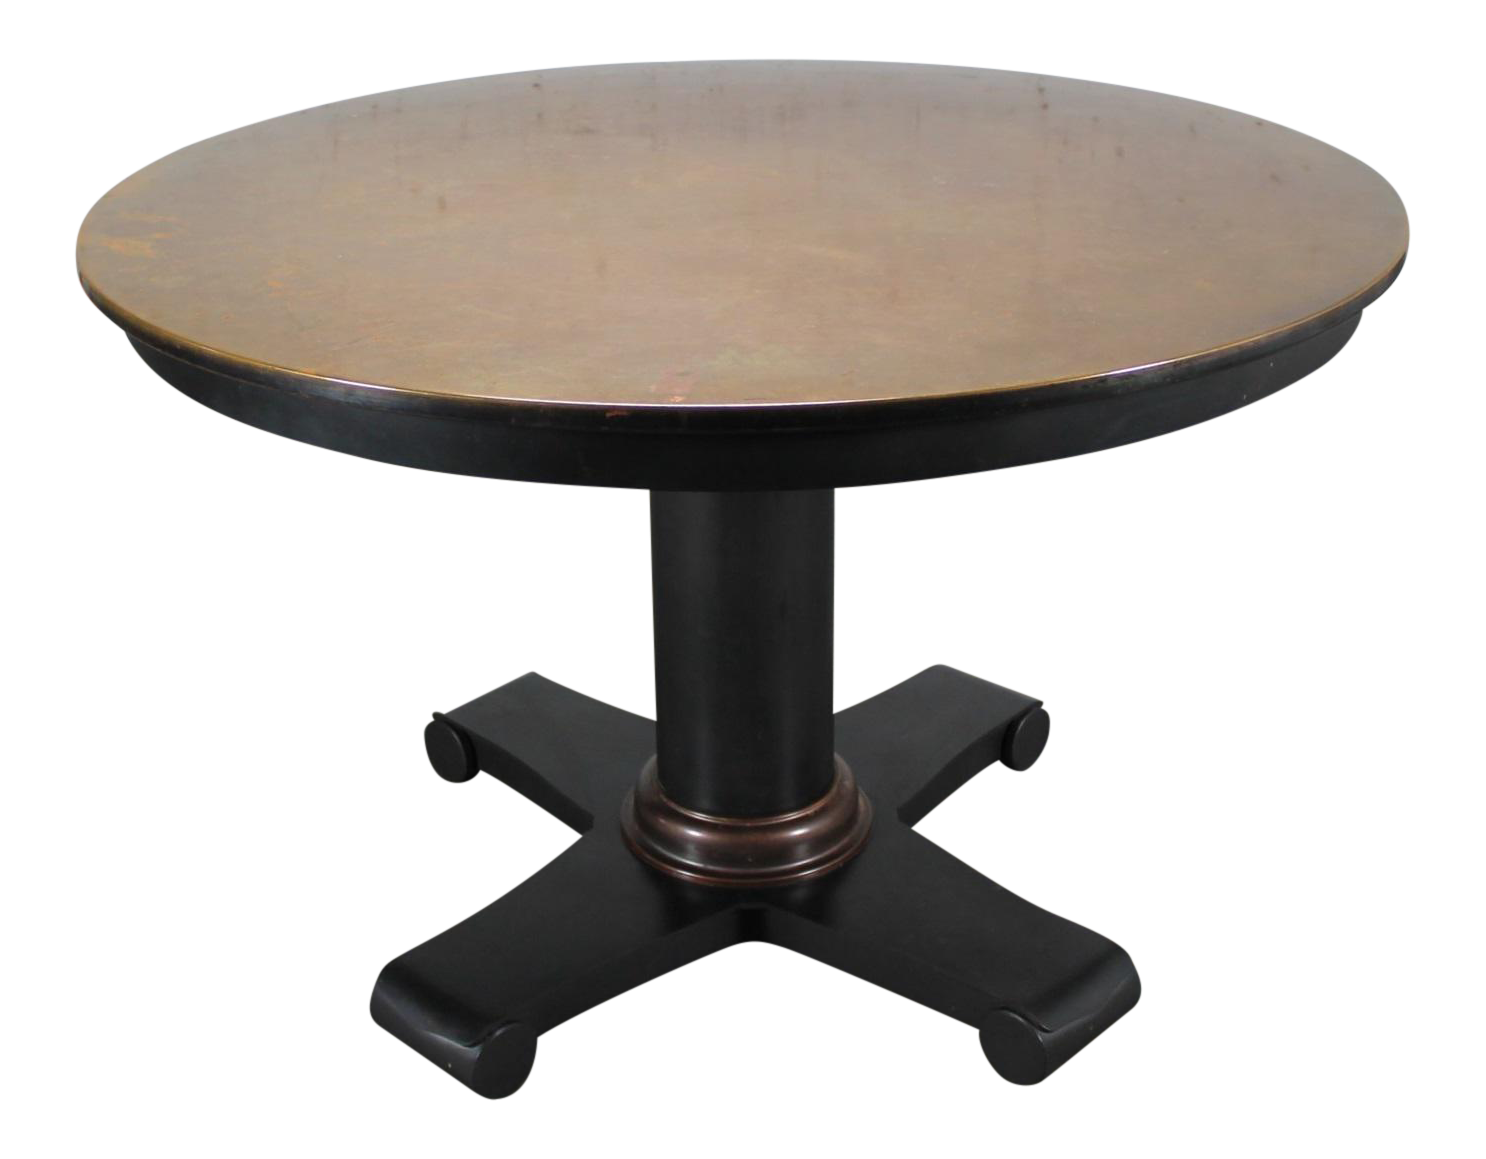 Contemporary Round Copper Top Dining Table Chairish : 9b691672 dc16 461f 8cbe e66b26a77d01aspectfitampwidth640ampheight640 from www.chairish.com size 640 x 640 jpeg 23kB